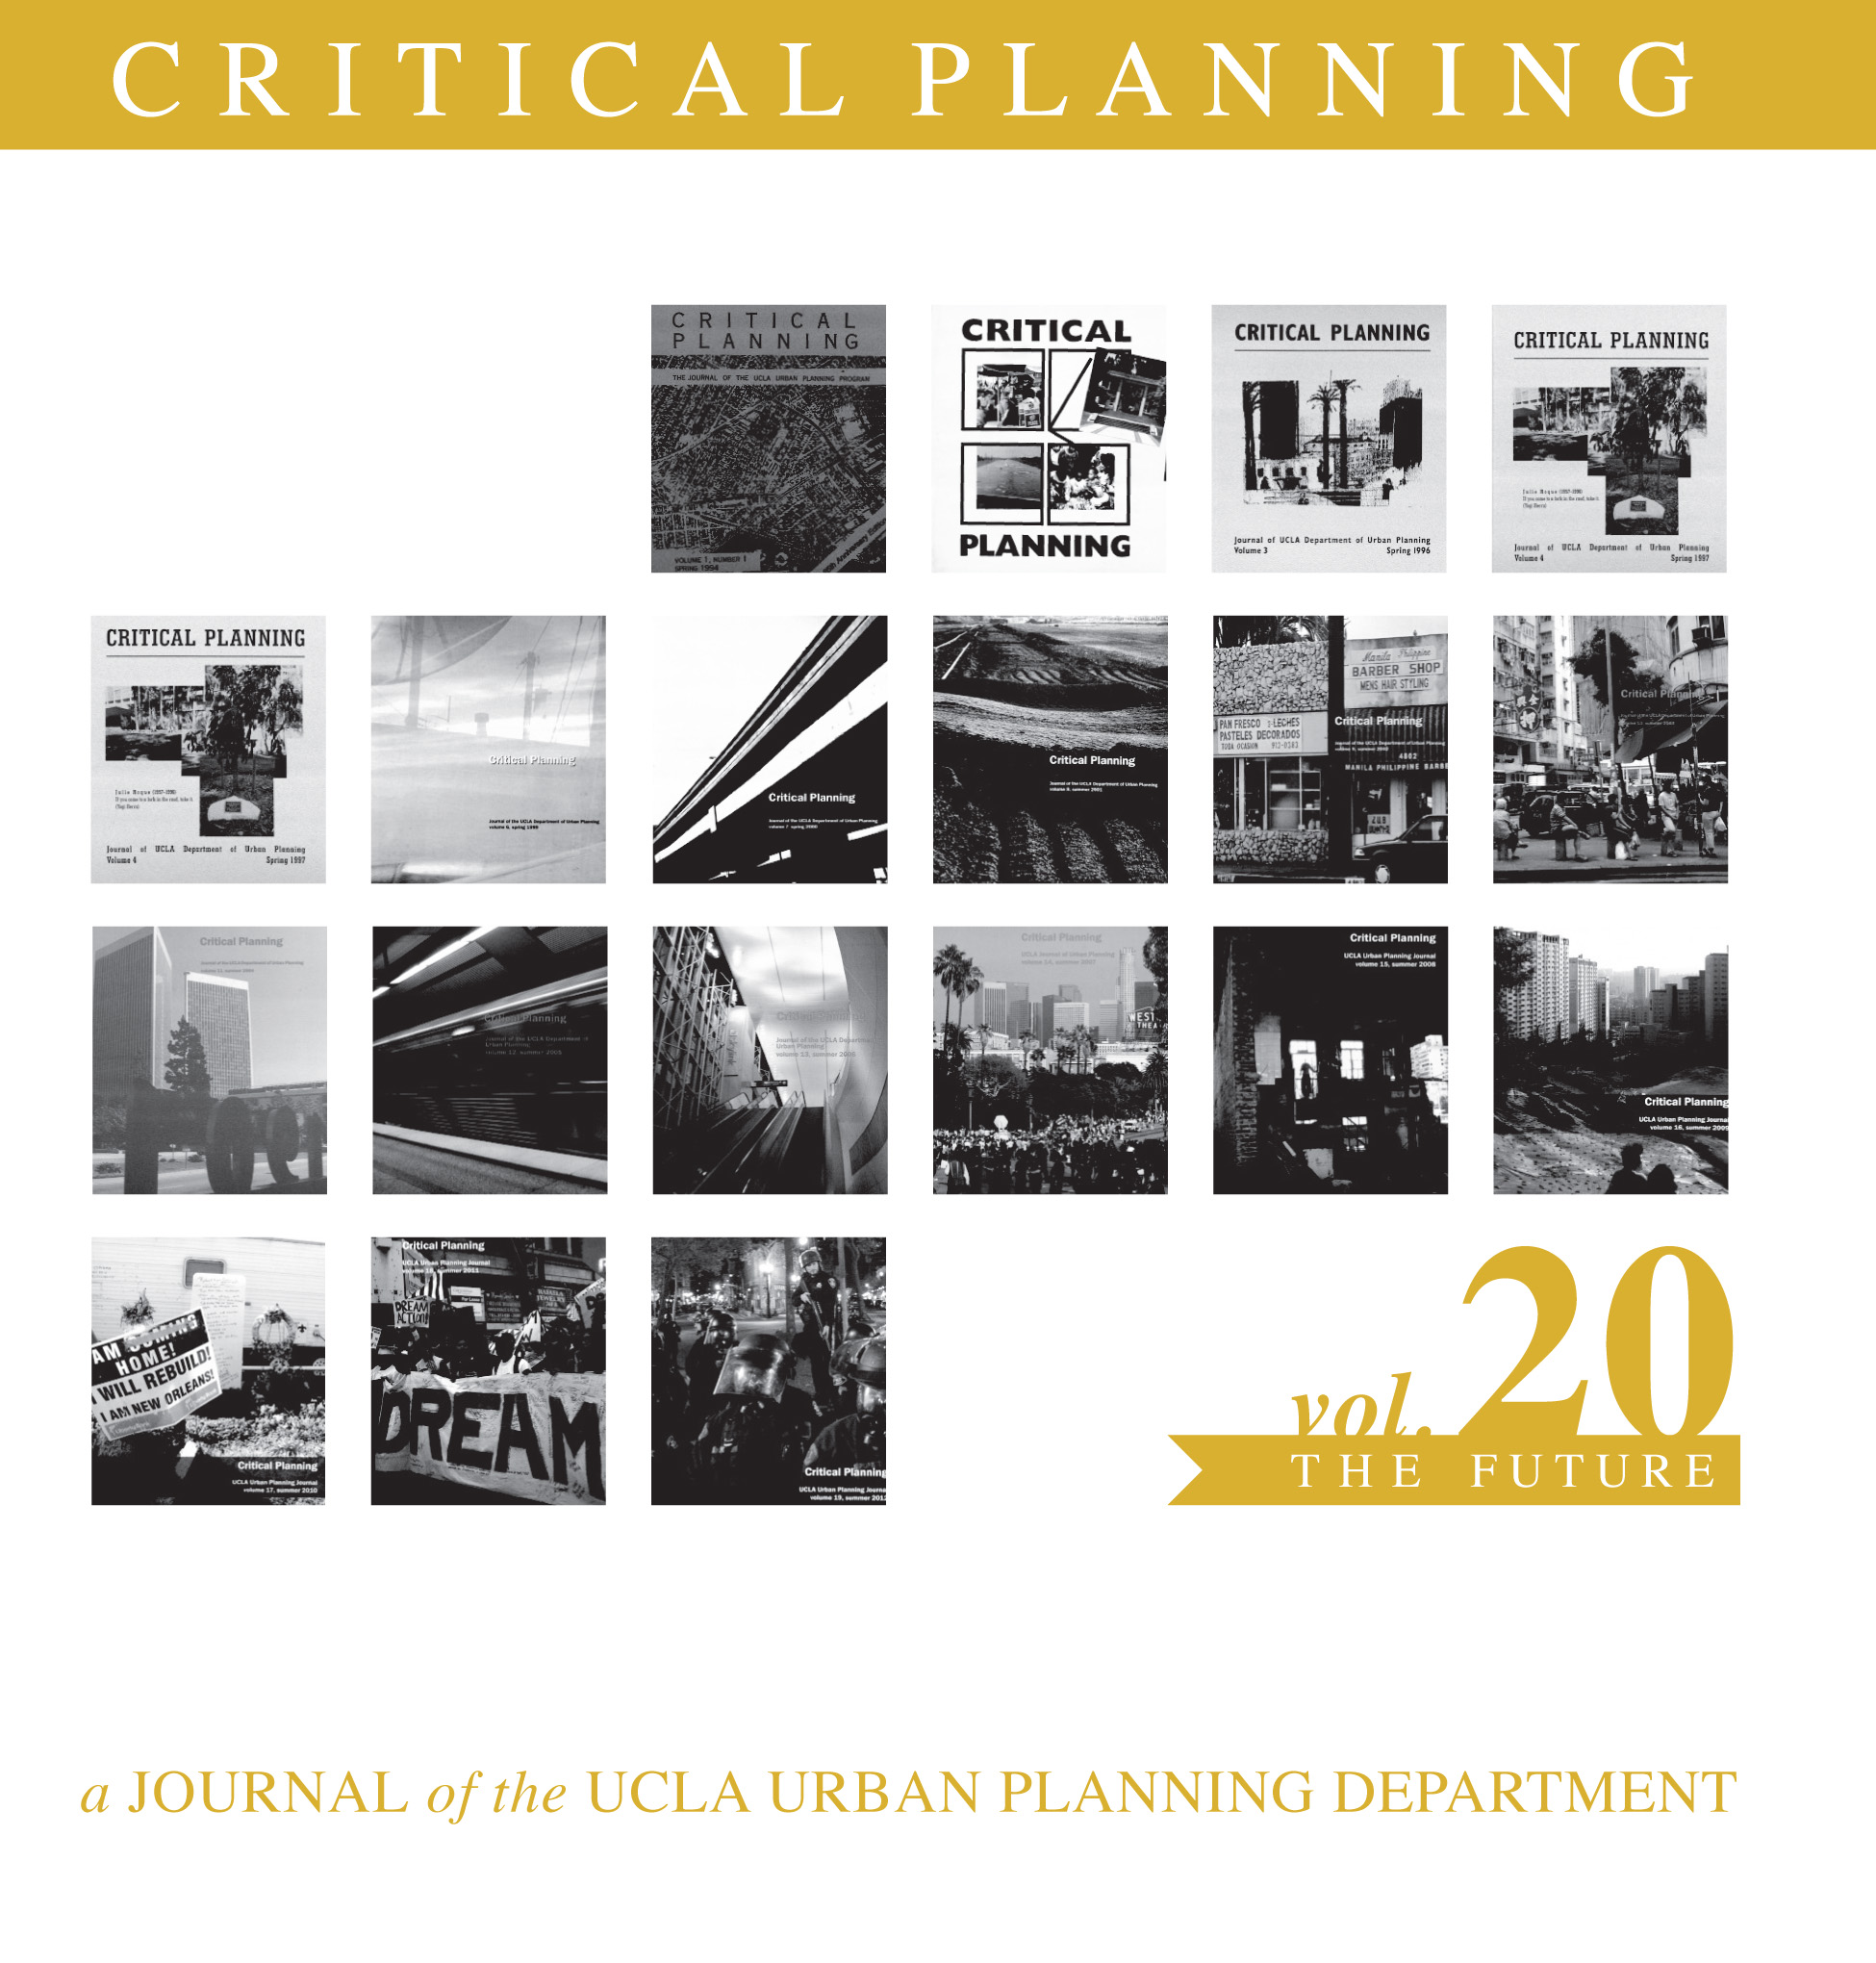 http://luskin.ucla.edu/sites/default/files/images/Cover_CPJ20.jpg